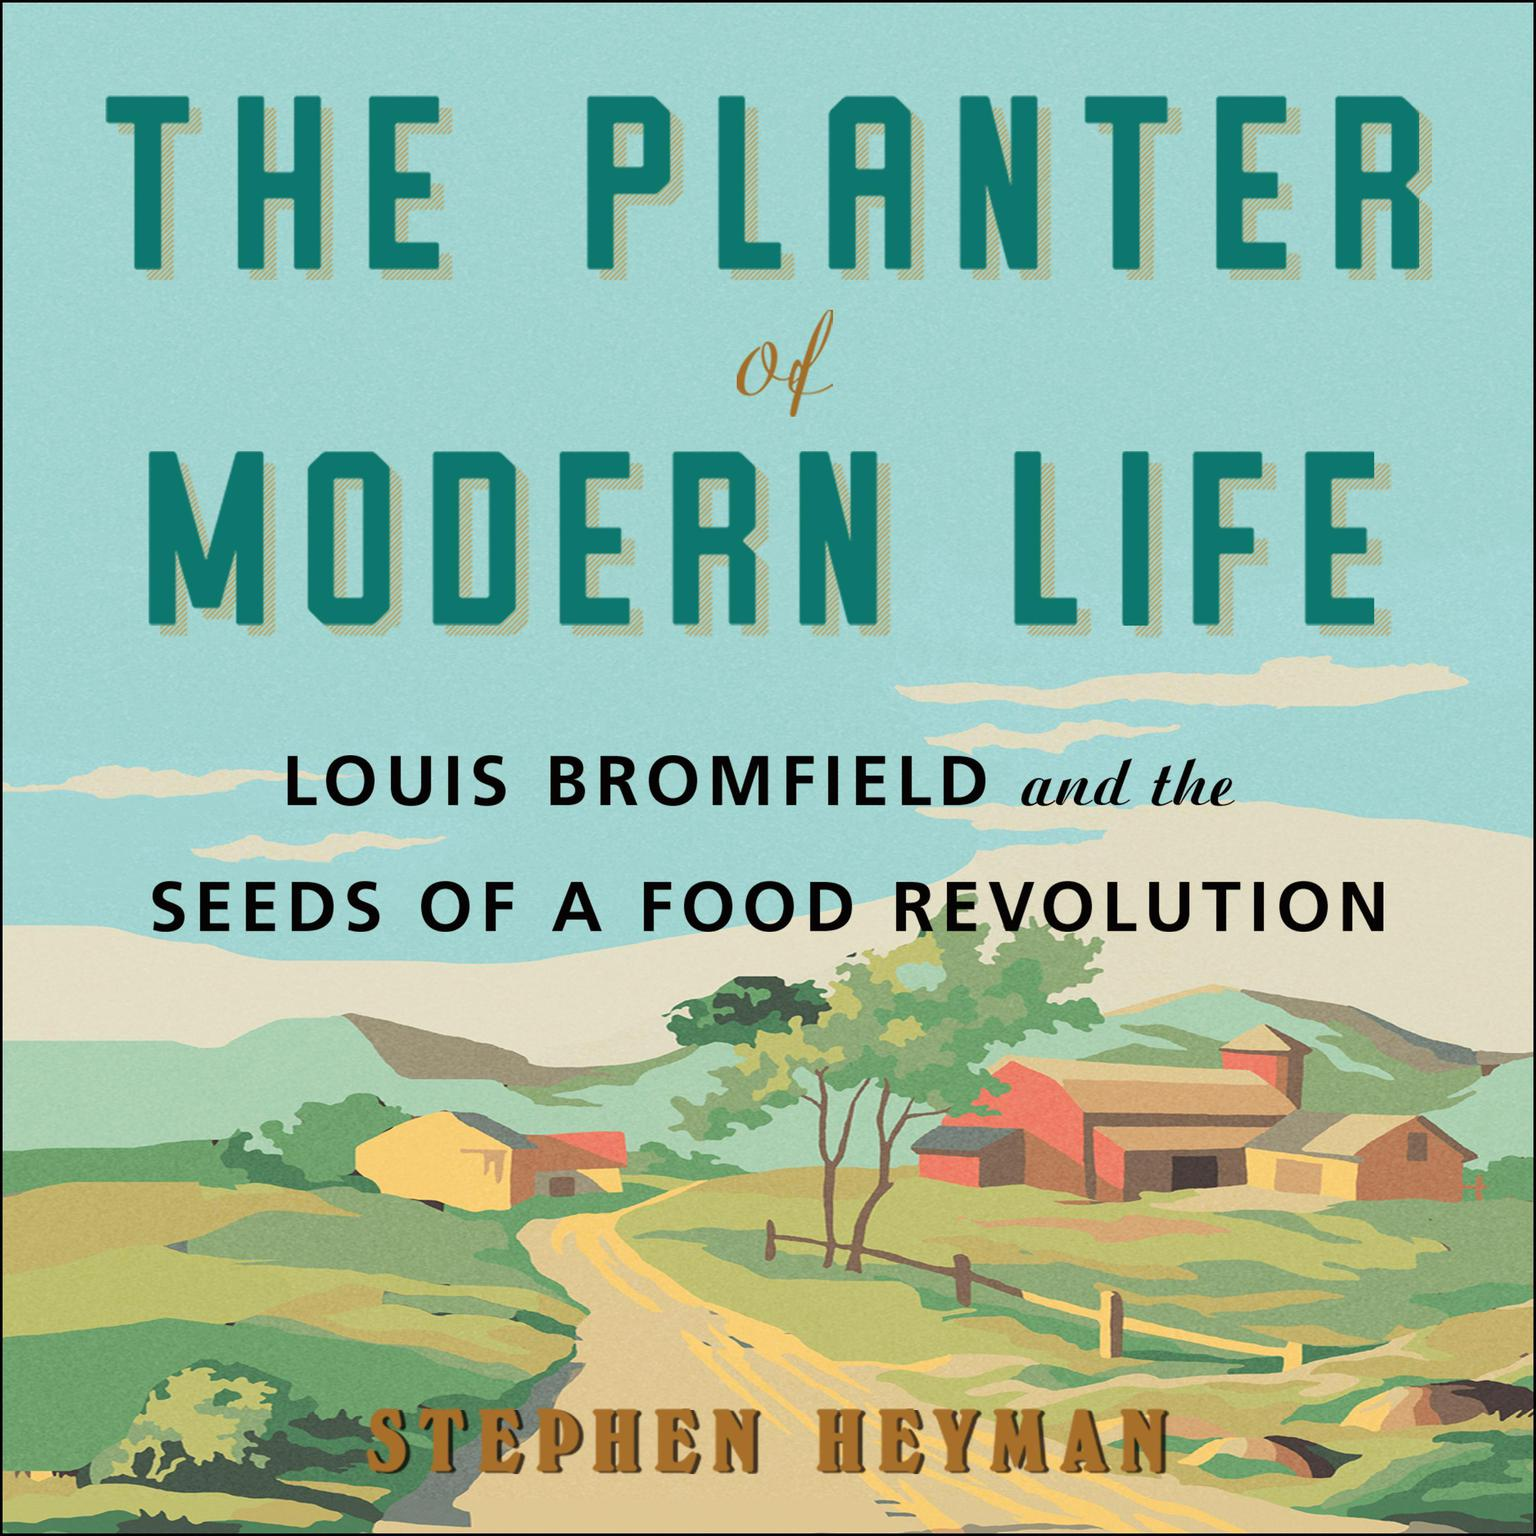 The Planter of Modern Life: Louis Bromfield and the Seeds of a Food Revolution Audiobook, by Stephen Heyman